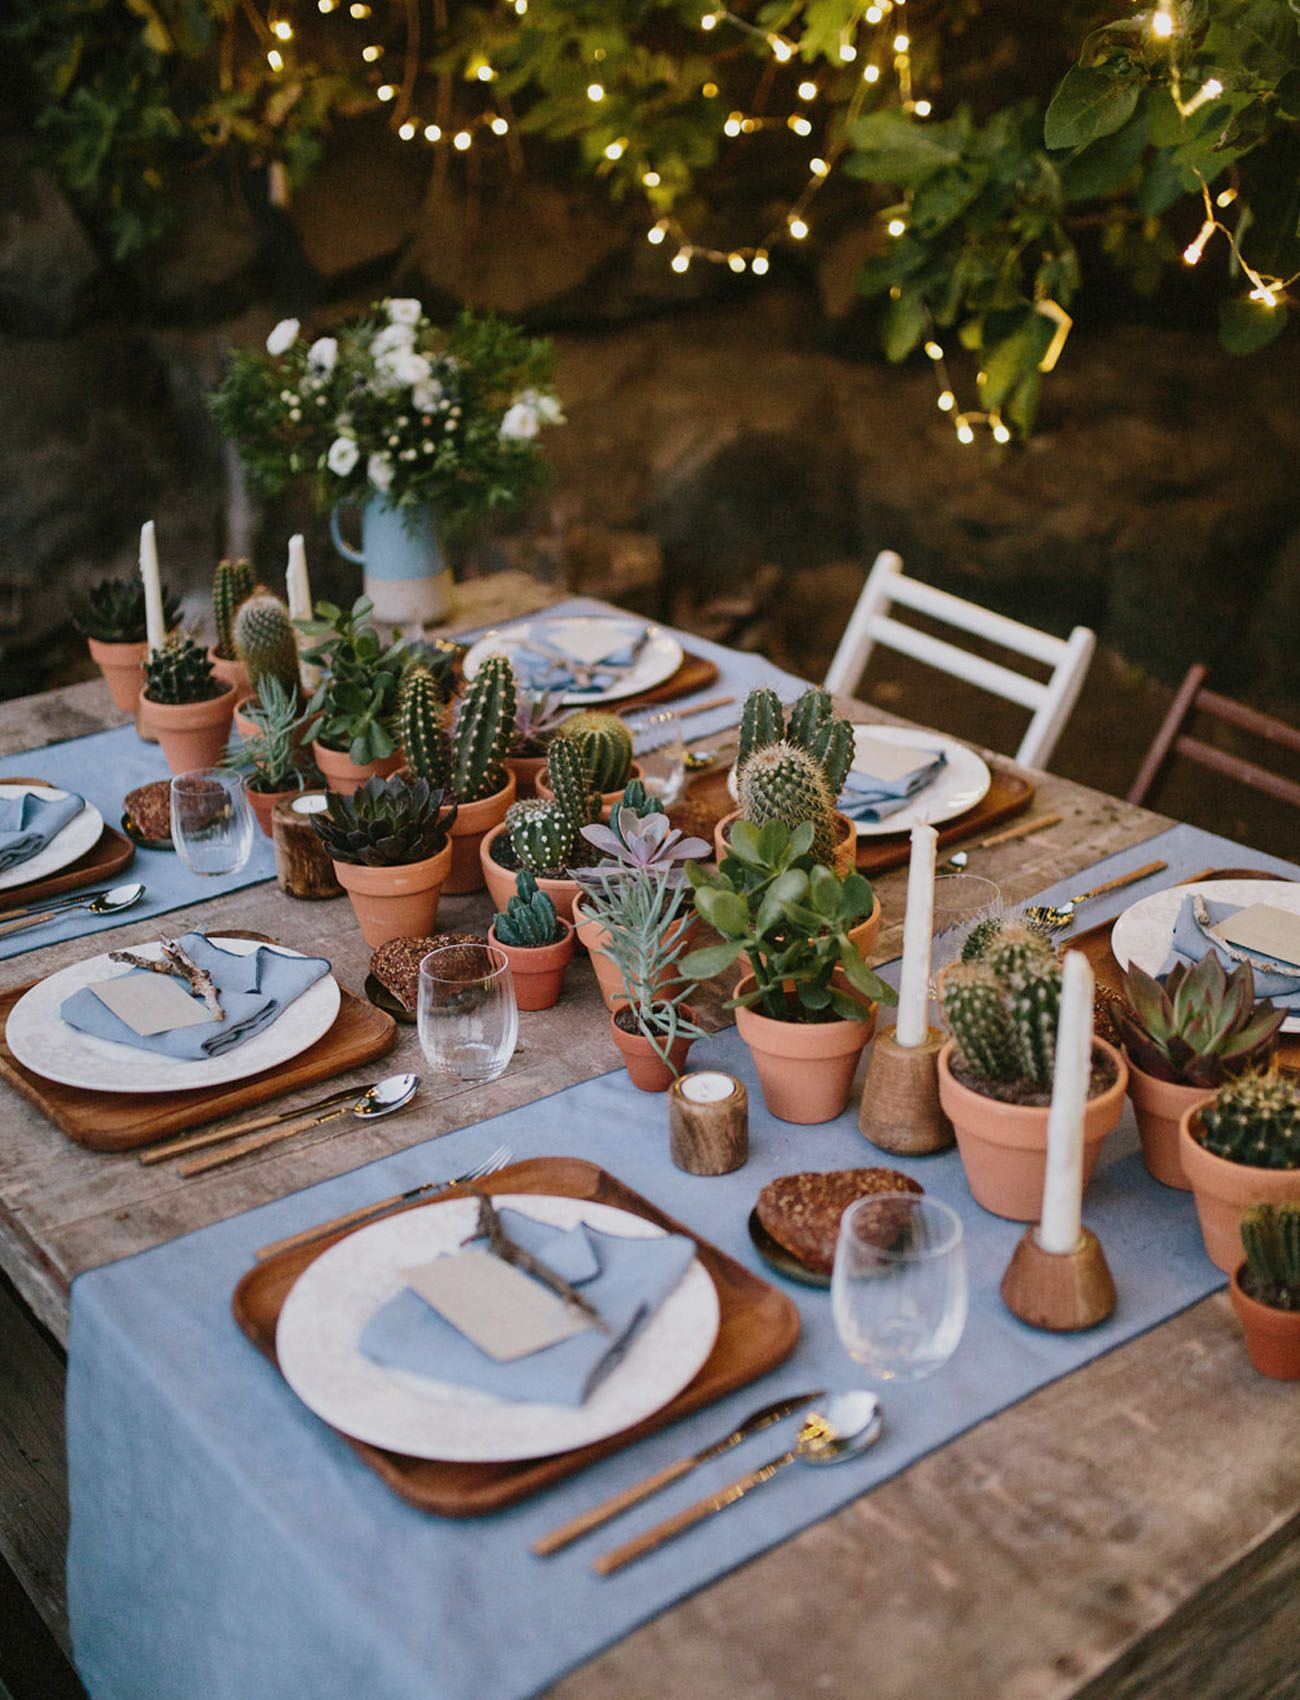 A Free Spirited Elopement on the Volcanic Island of Lanzarote